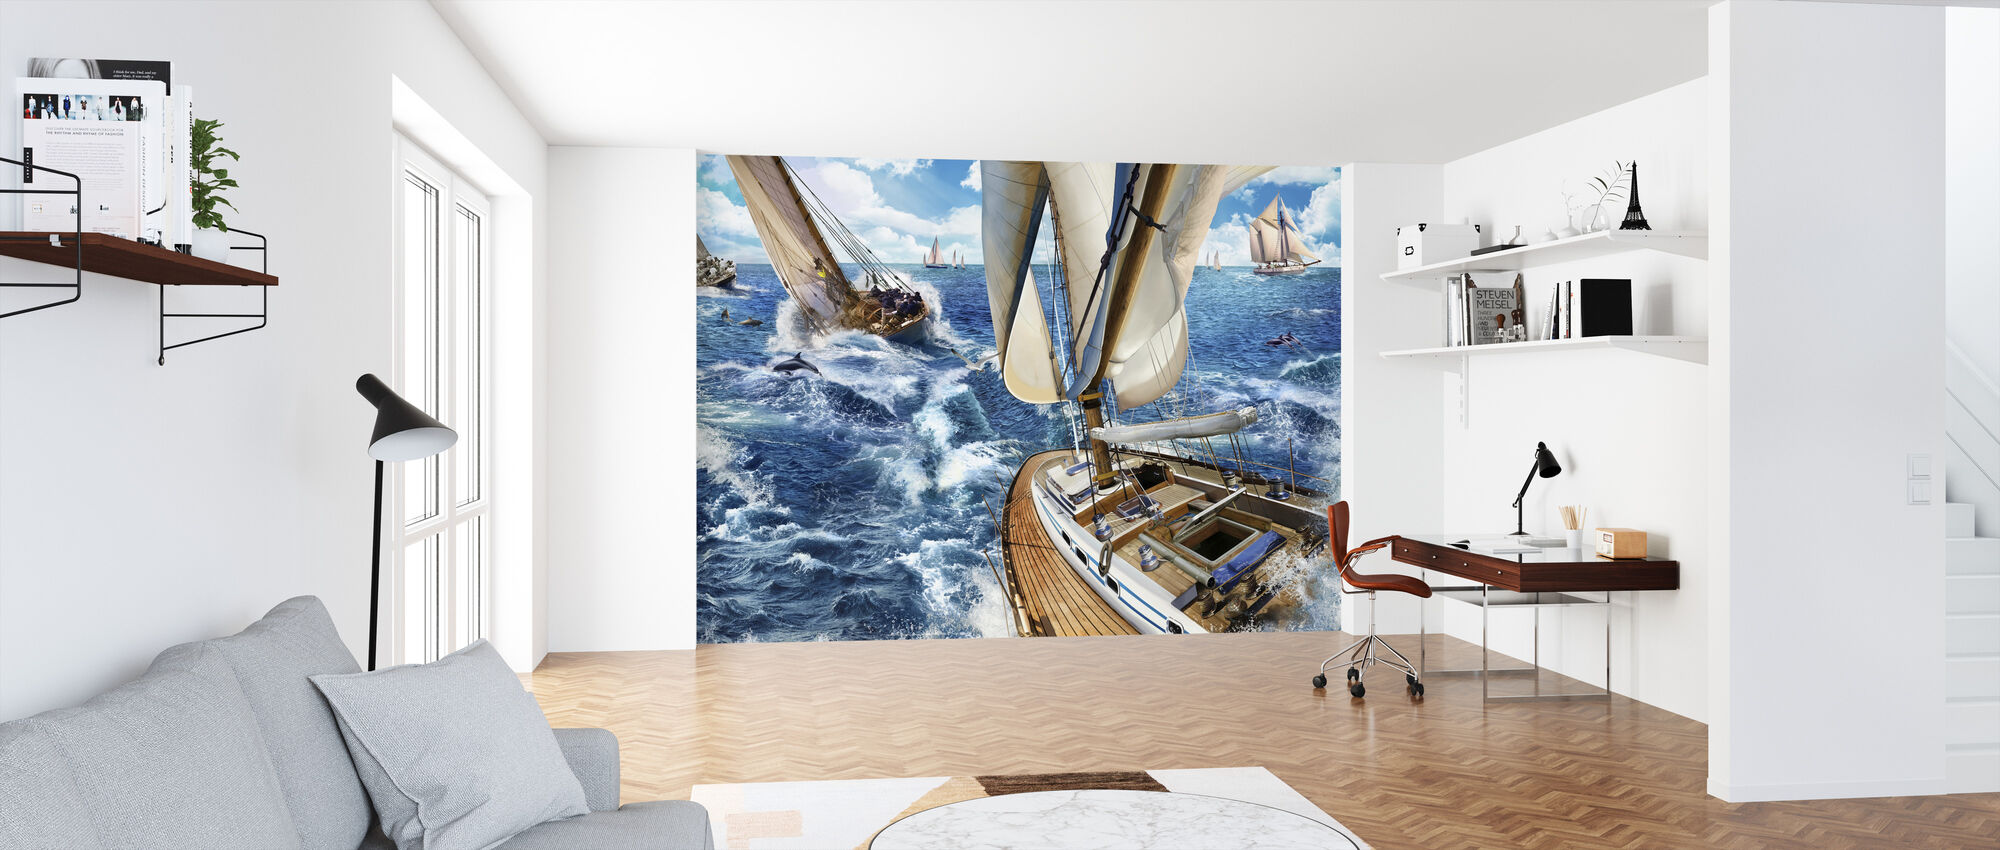 Sailing with Dolphins - Wallpaper - Office